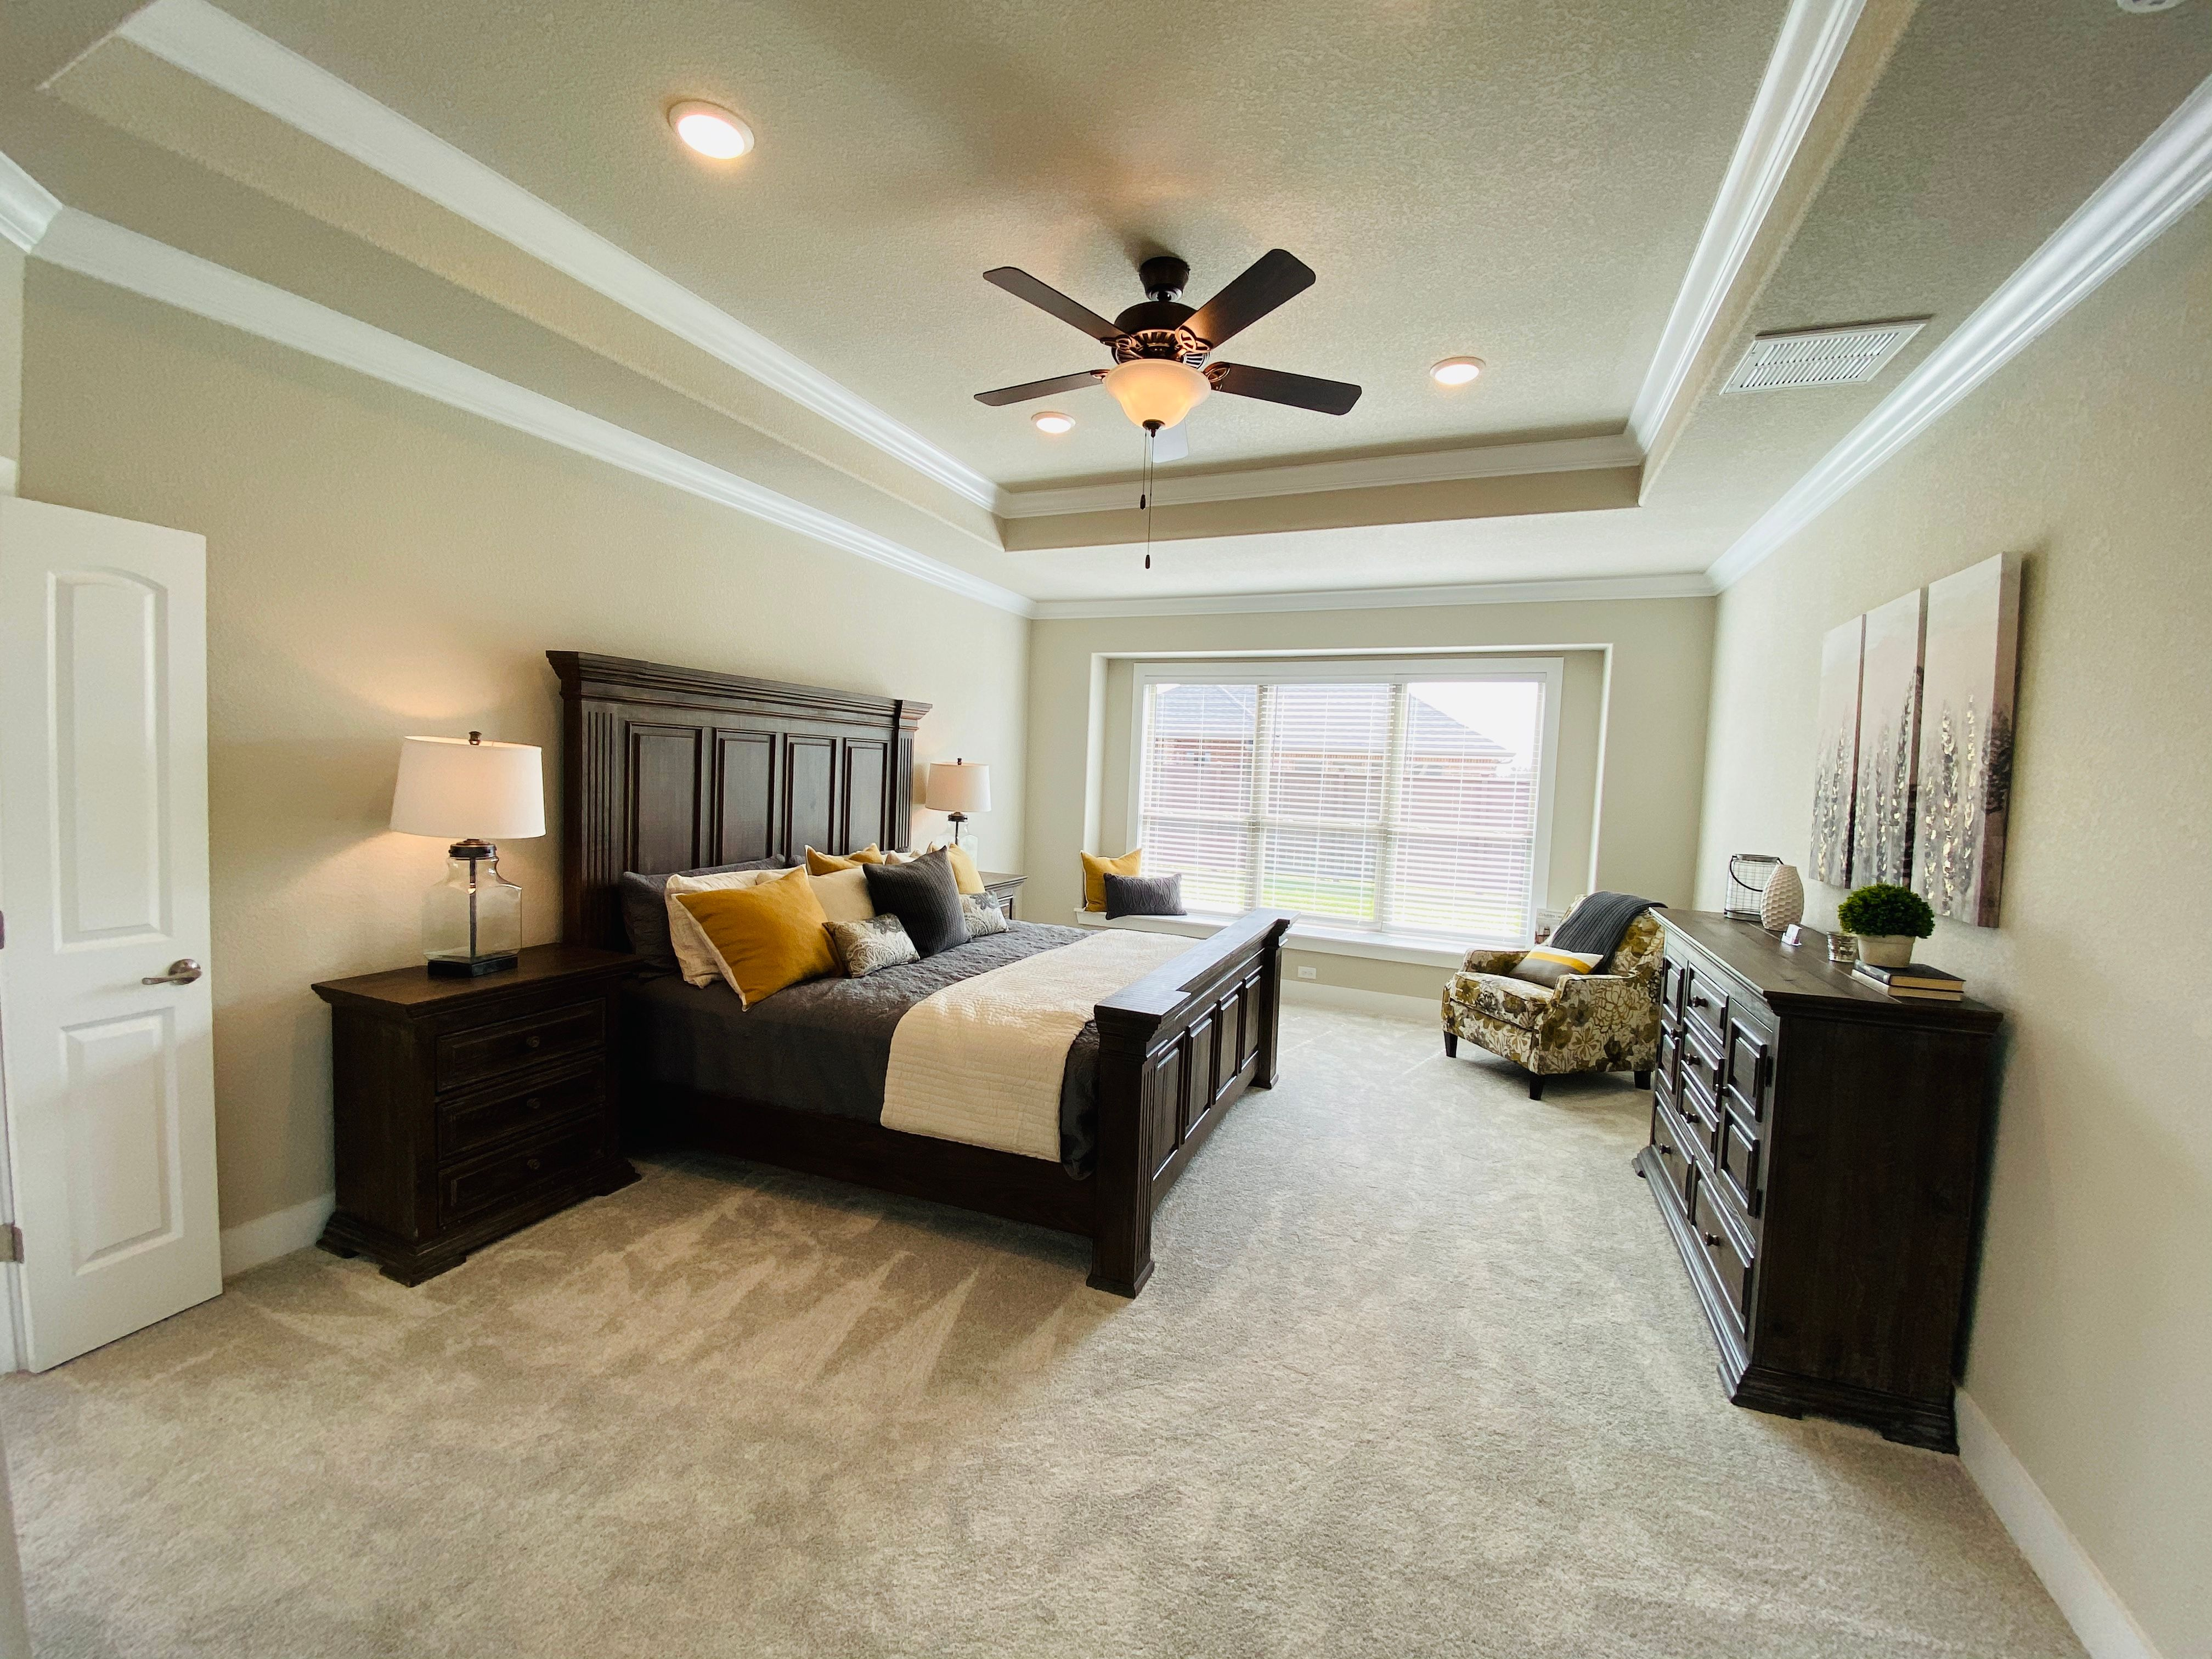 Bedroom featured in the Lindy By Blackstone Homes in Bryan-College Station, TX